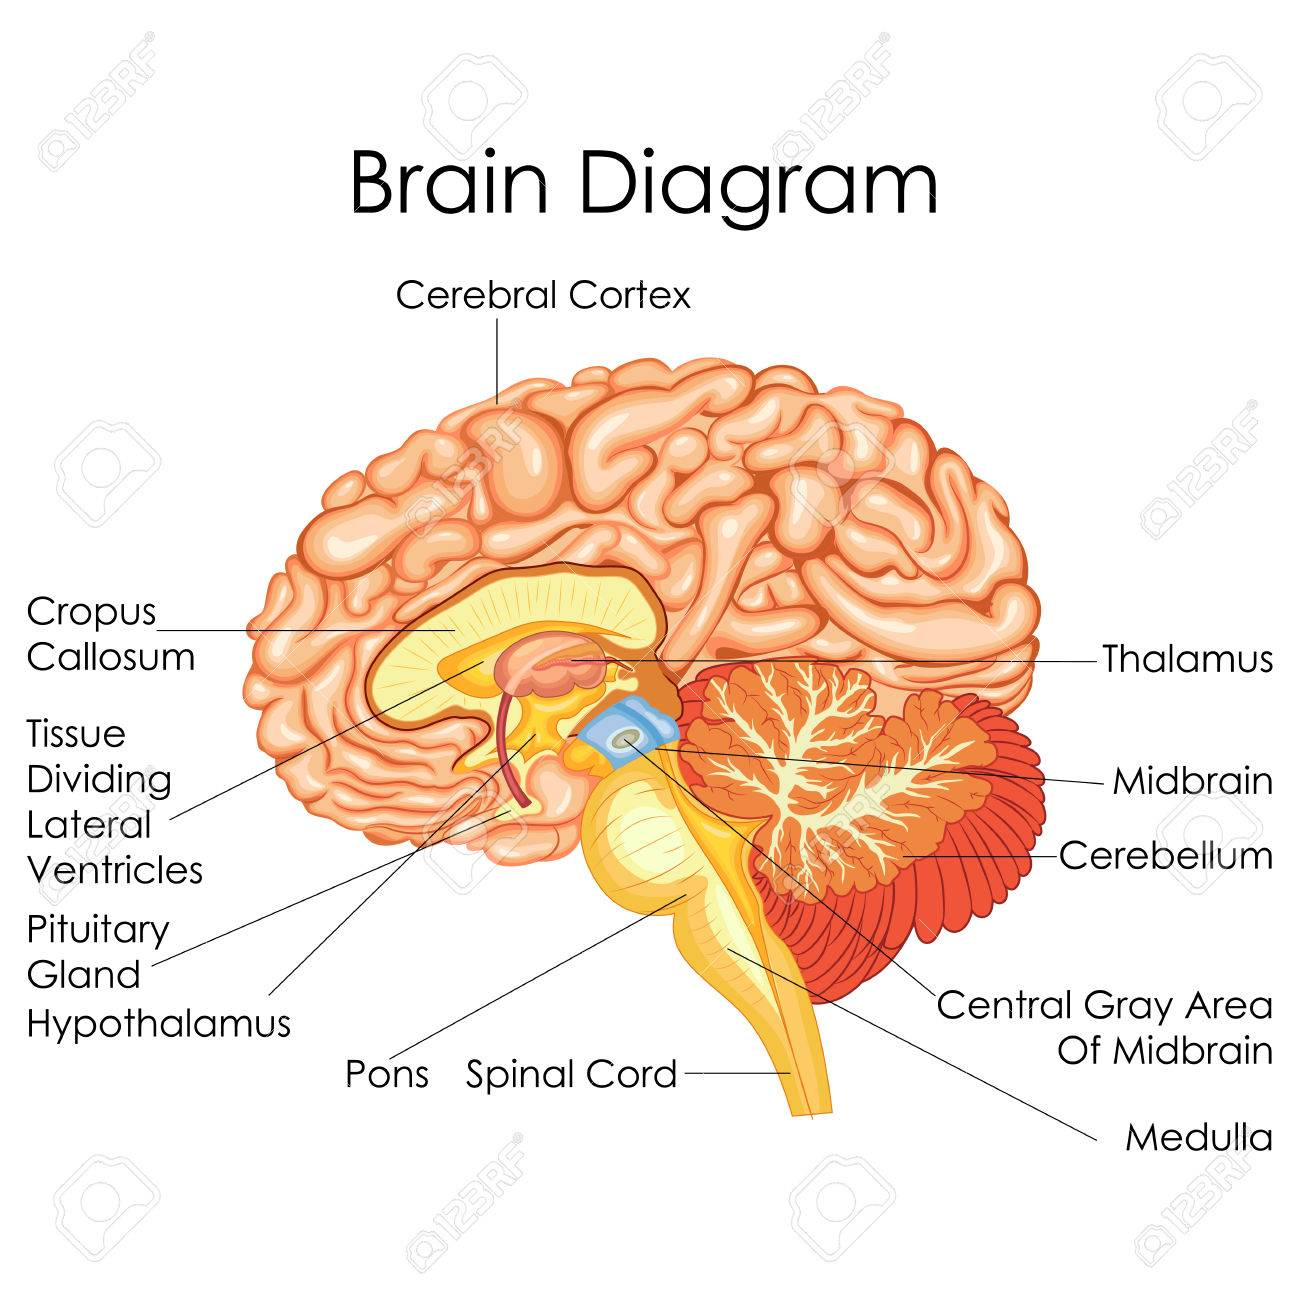 Brain Diagram Lateral - DIY Wiring Diagrams •